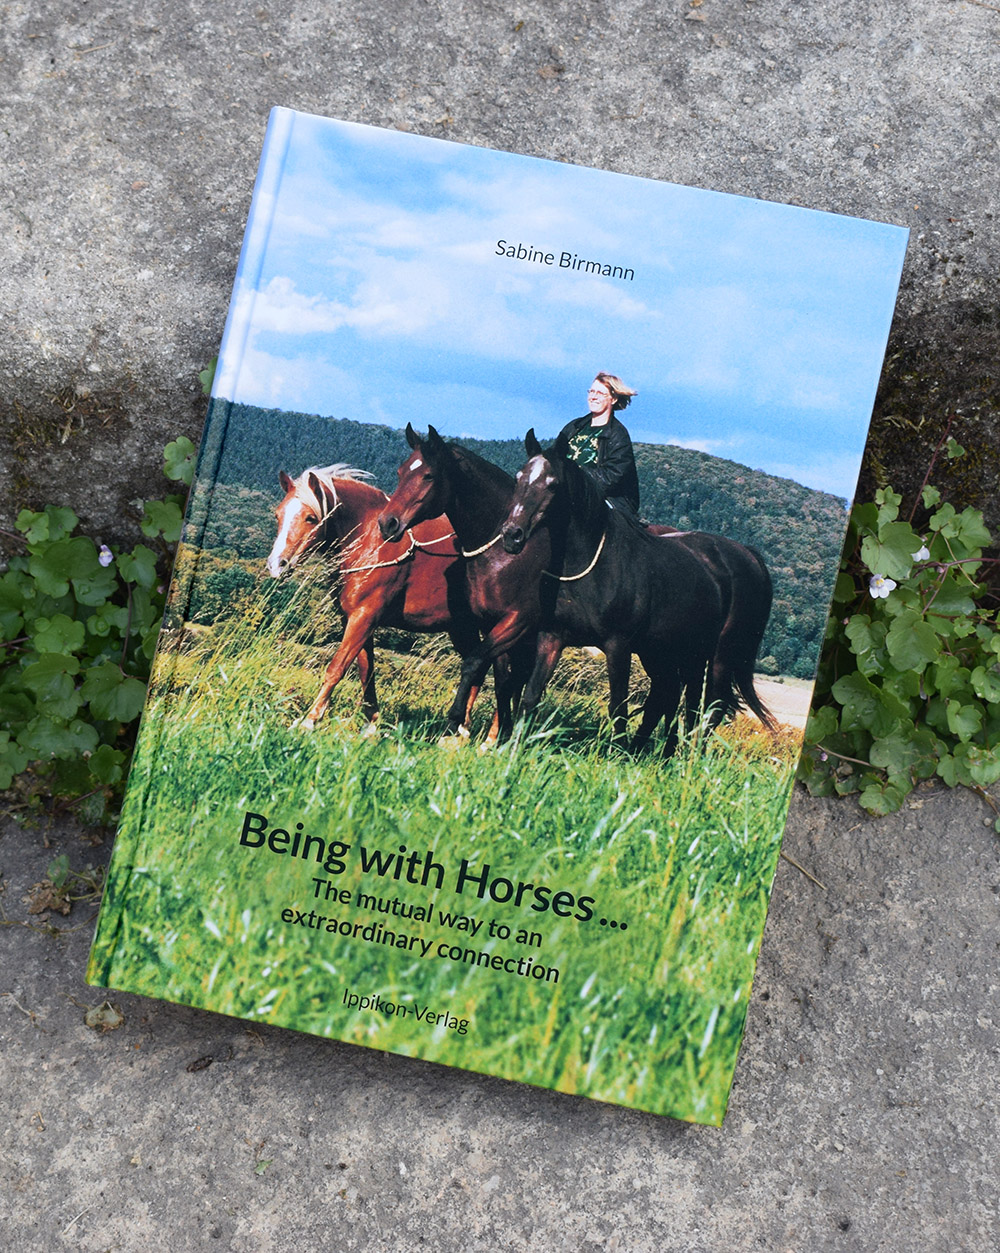 Neues Buch von Sabine Birmann auf Englisch: Being with Horses … the mutual way to an extraordinary connection